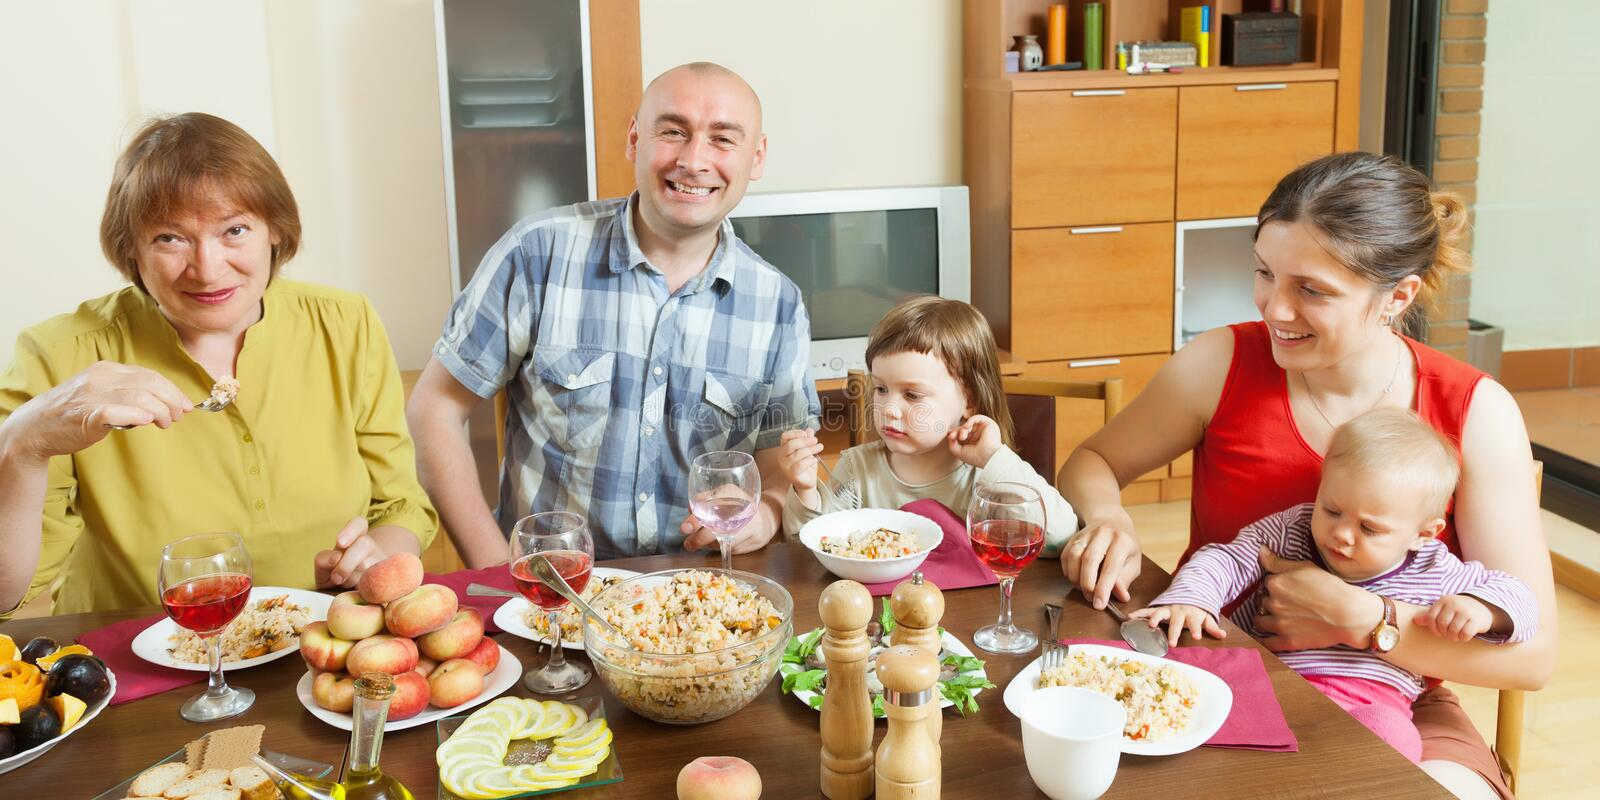 Happy three generations family posing over celebratory table stock image